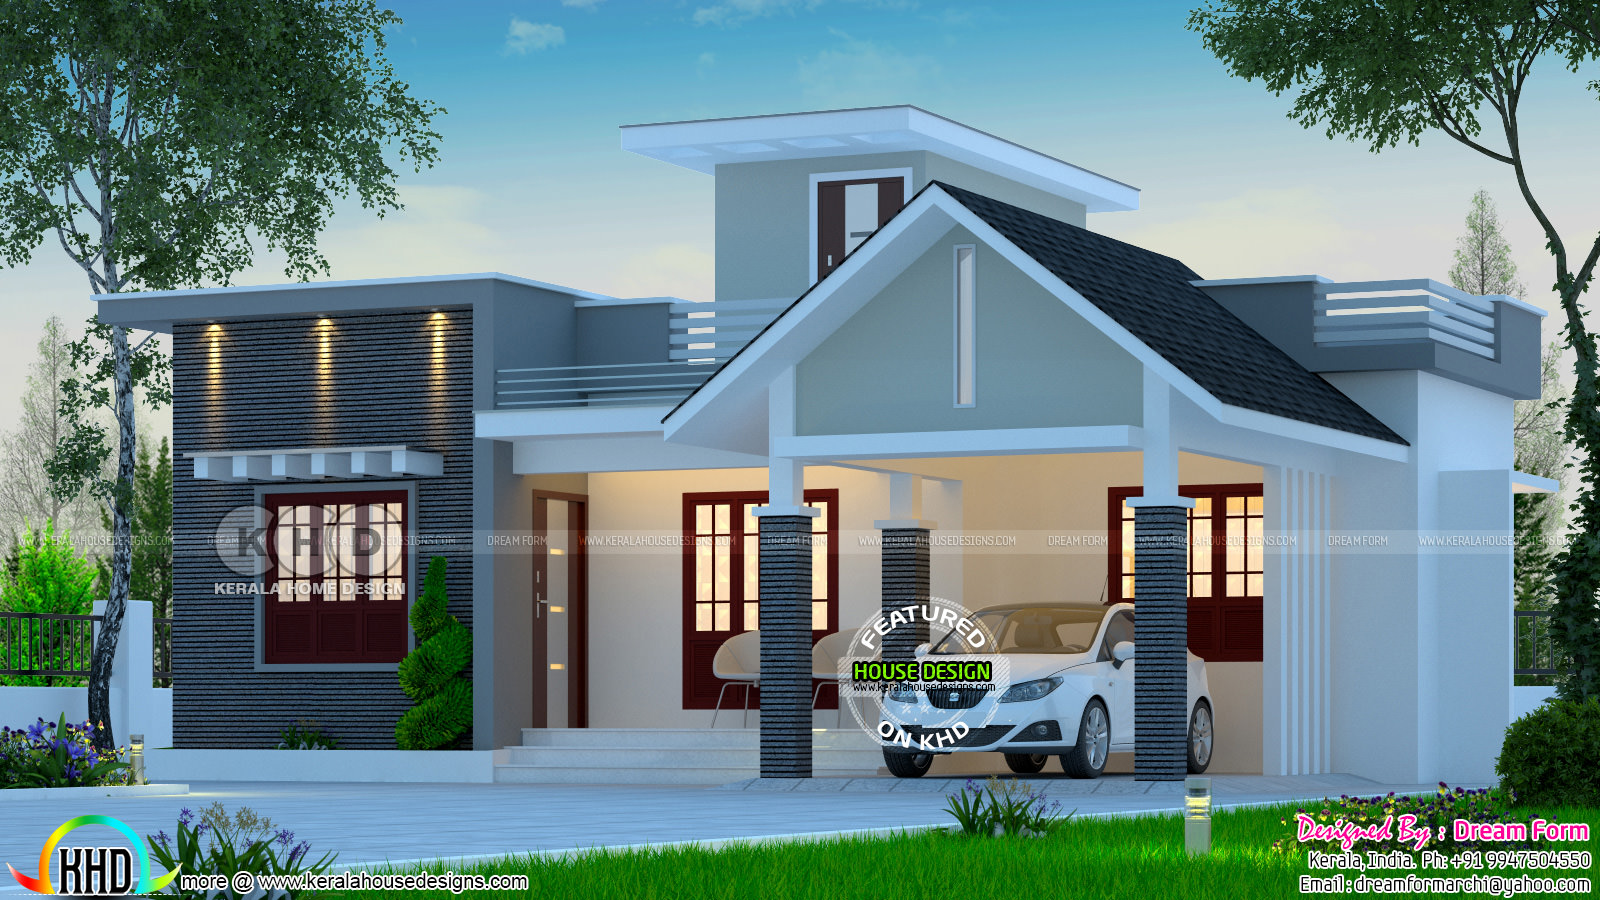 single floor splendind look - 15+ 3 Room House Low Cost Small House Design In Nepal PNG